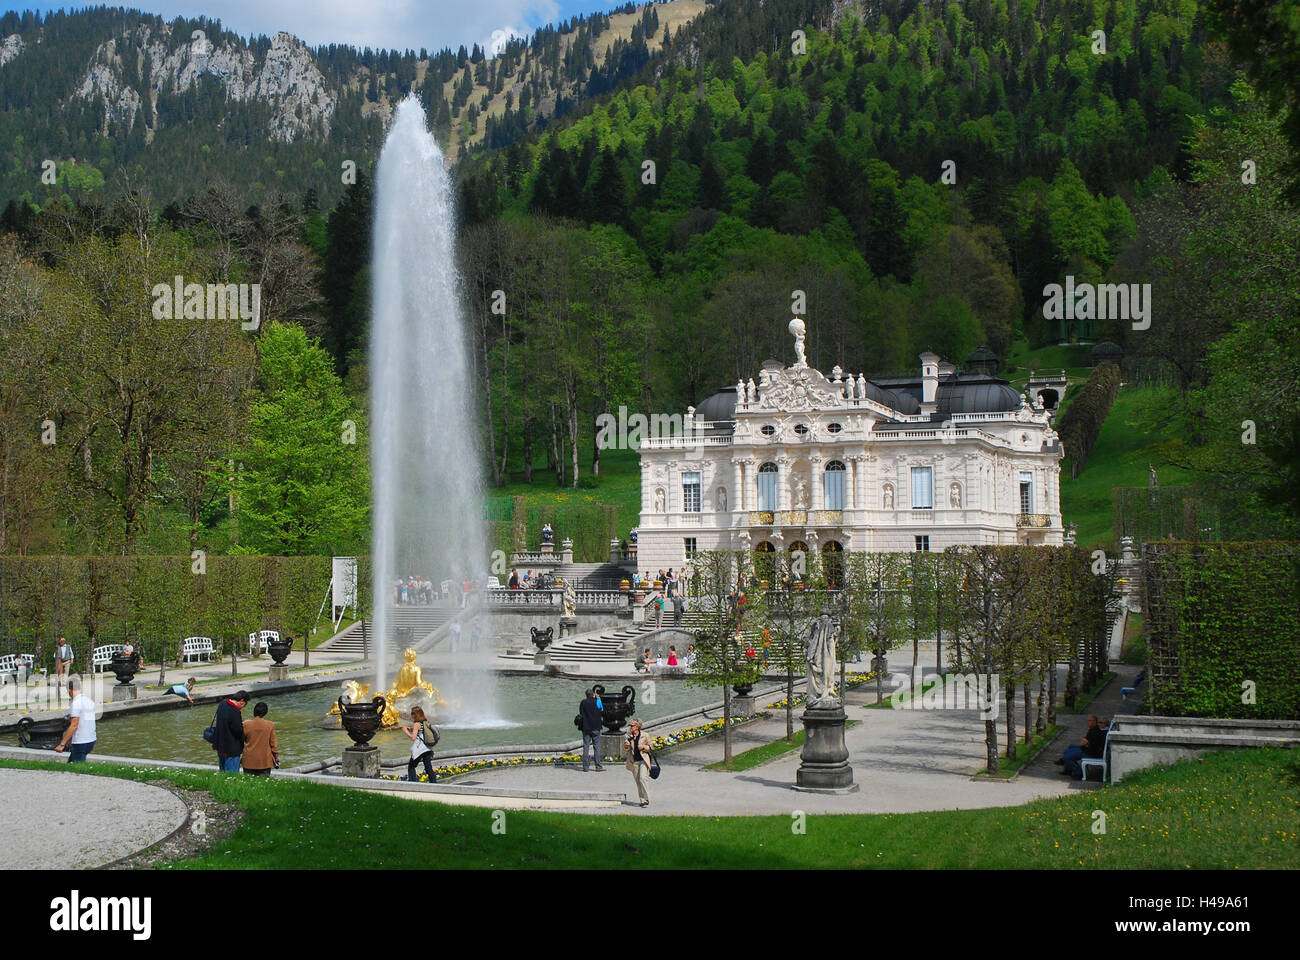 Germany, Bavaria, Ettal, lock, gentle court, water jet, visitor, no property release, South Germany, Upper Bavaria, - Stock Image